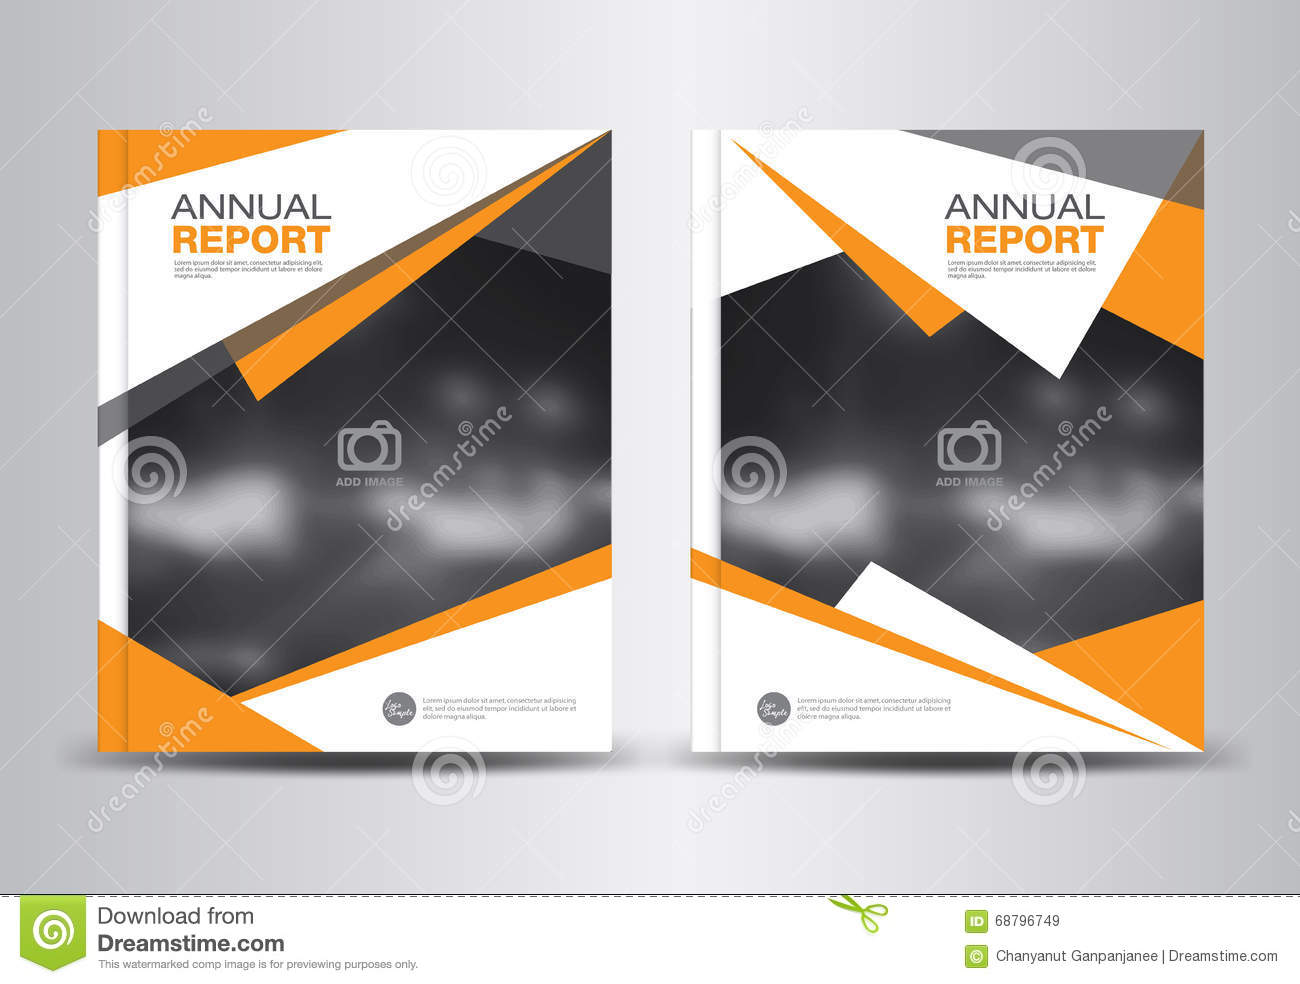 Free Annual Report Templates